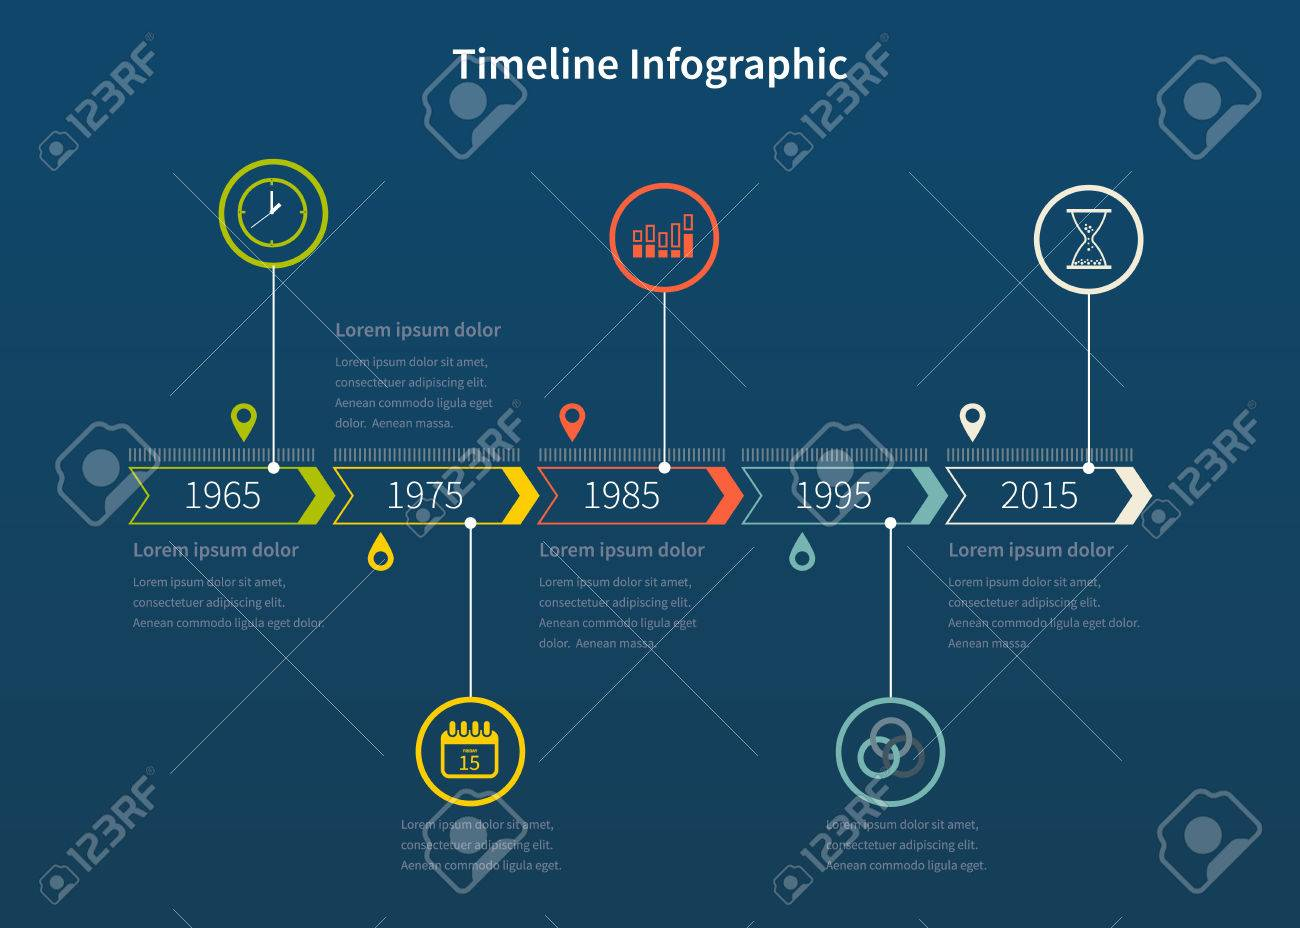 1_1523158459899_36151671-timeline-design-template-with-icons-and-graphics-idea-to-display-information-steps-for-industrial-fa.jpg